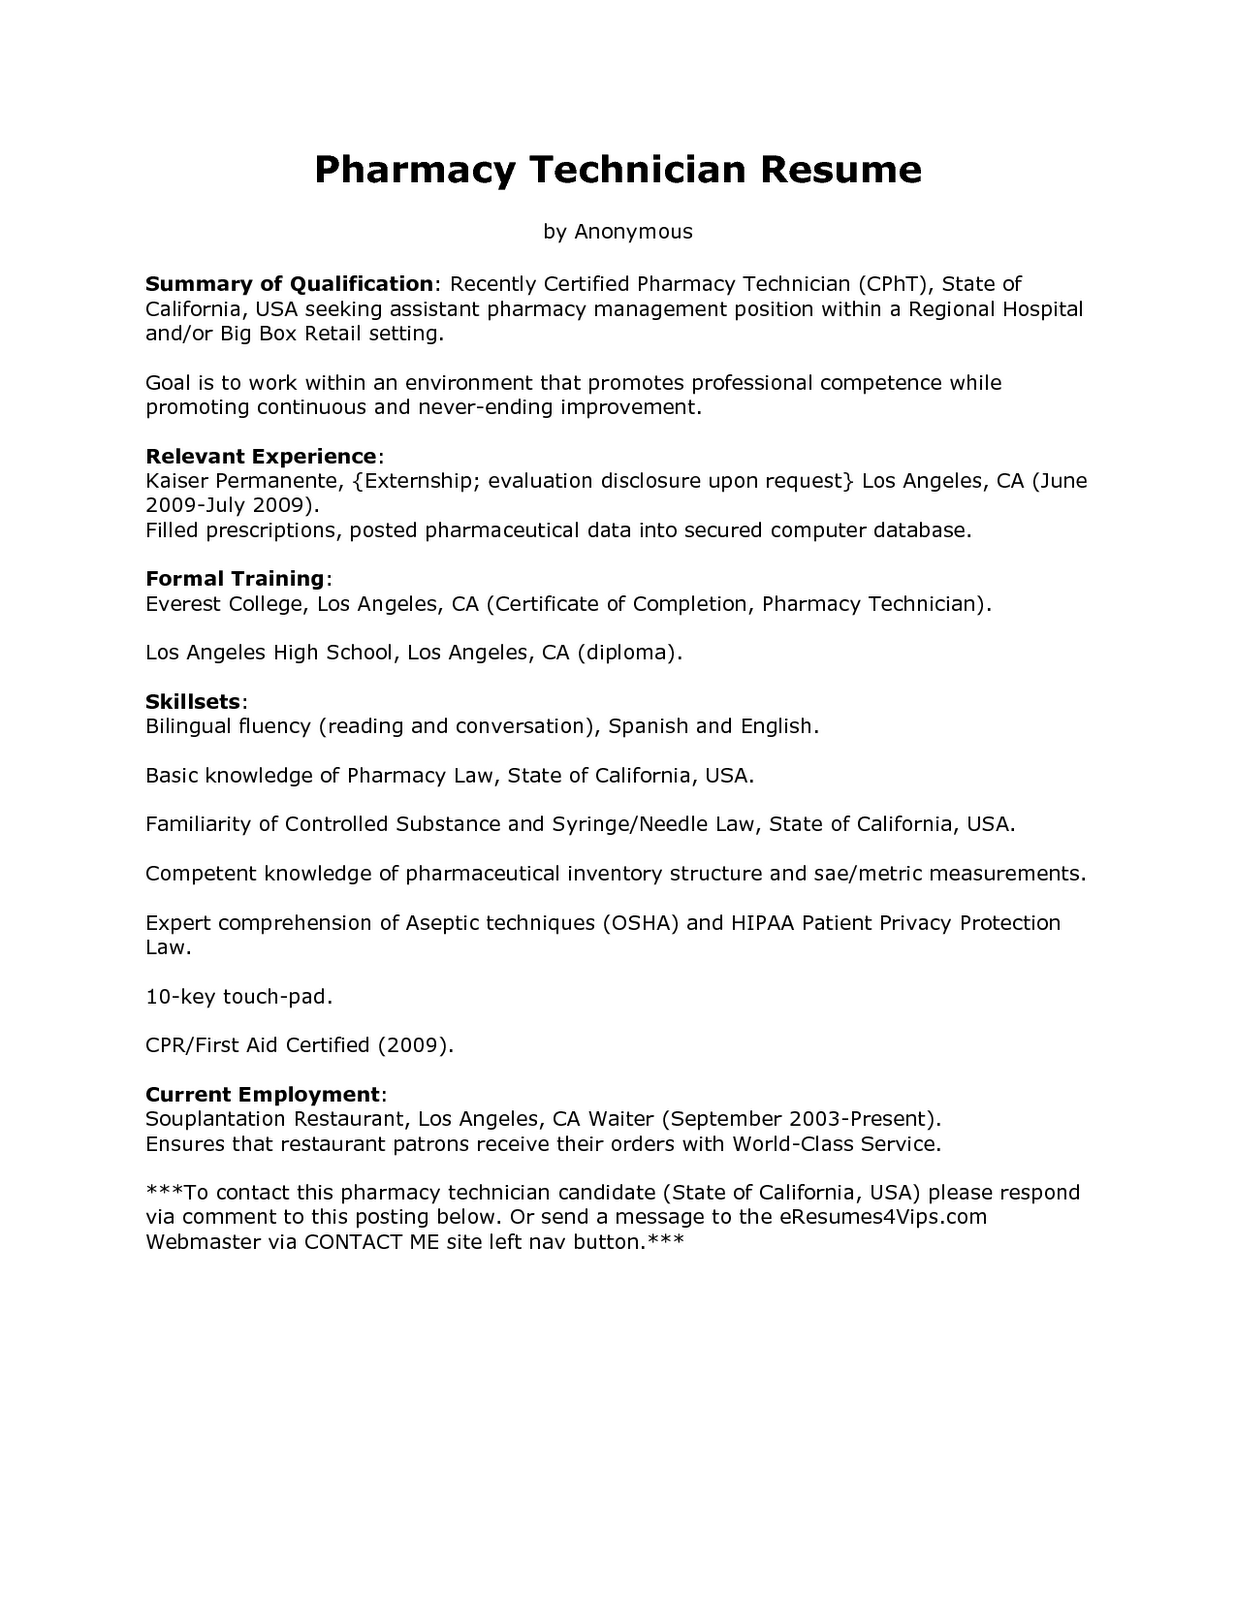 Resume Objective Examples Clerical Assistant Buy Original Essays Clerical  Assistant Resume Objective